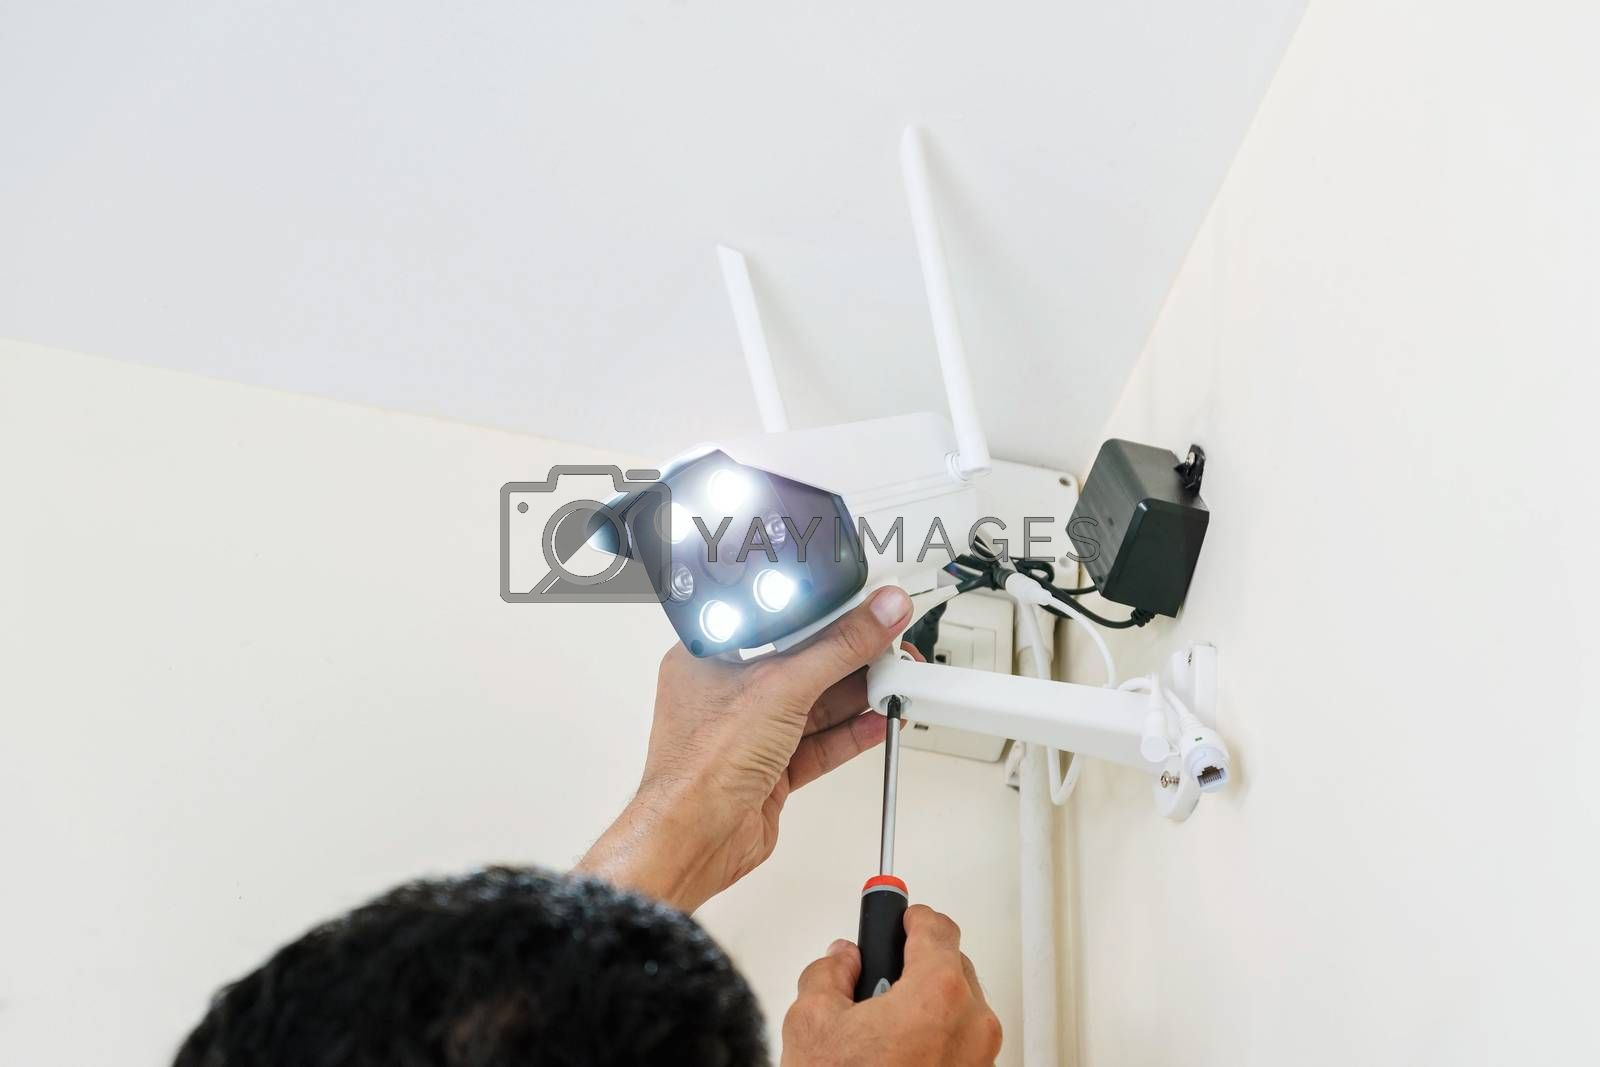 Technicians are installing wireless CCTV cameras on the walls of the house for security purposes.